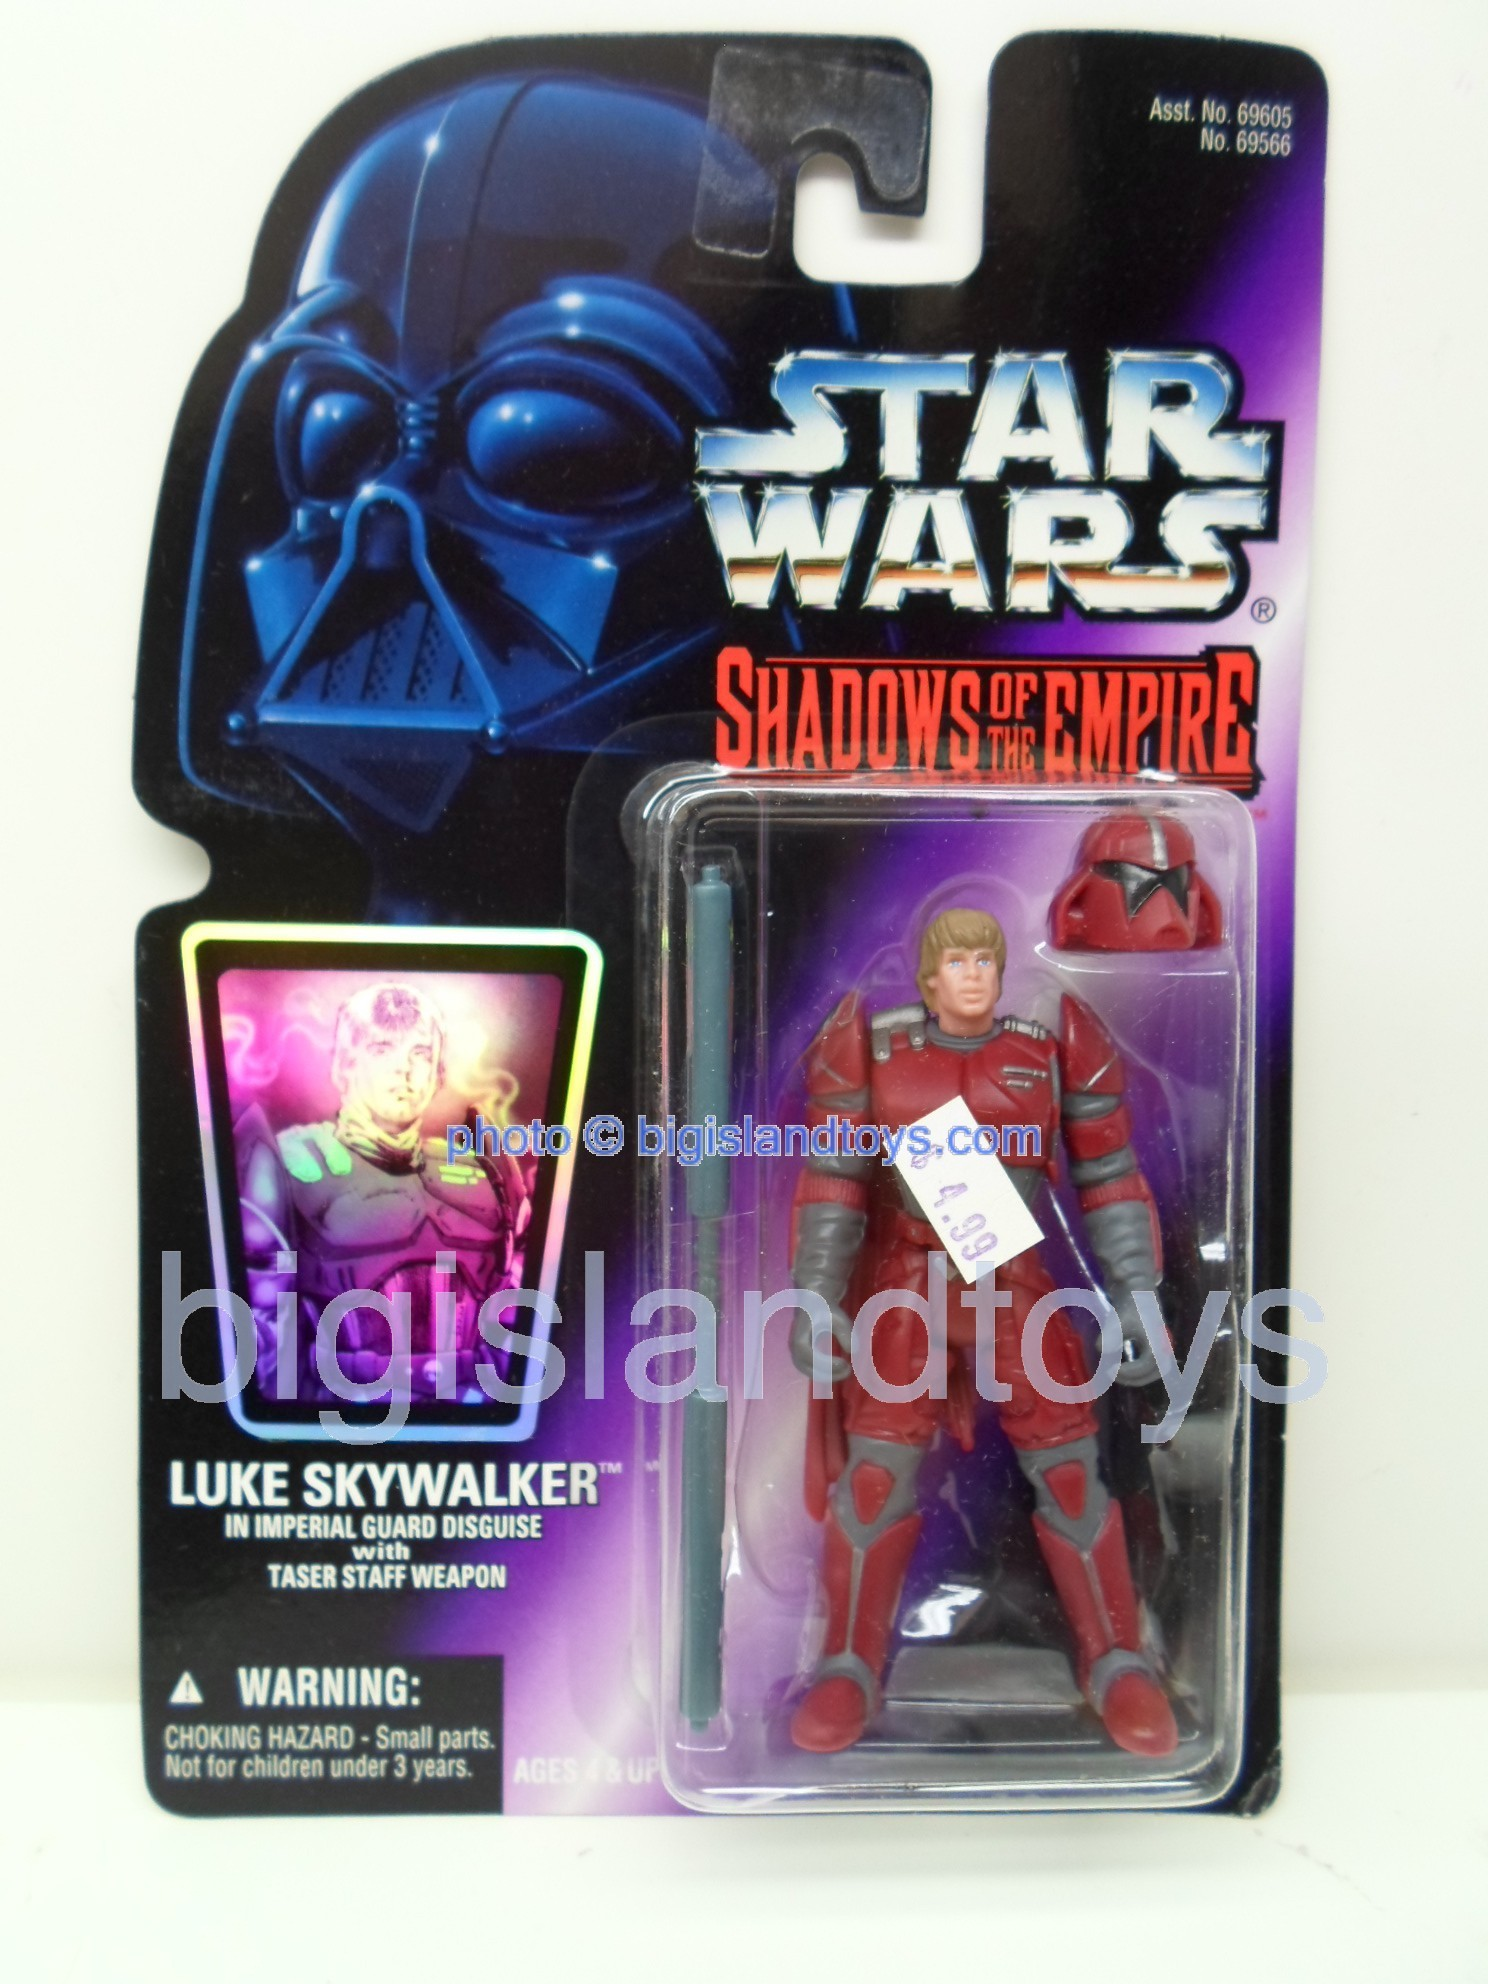 Star Wars  Shadows of the Empire   LUKE SKYWALKER IMPERIAL GUARD DISGUISE